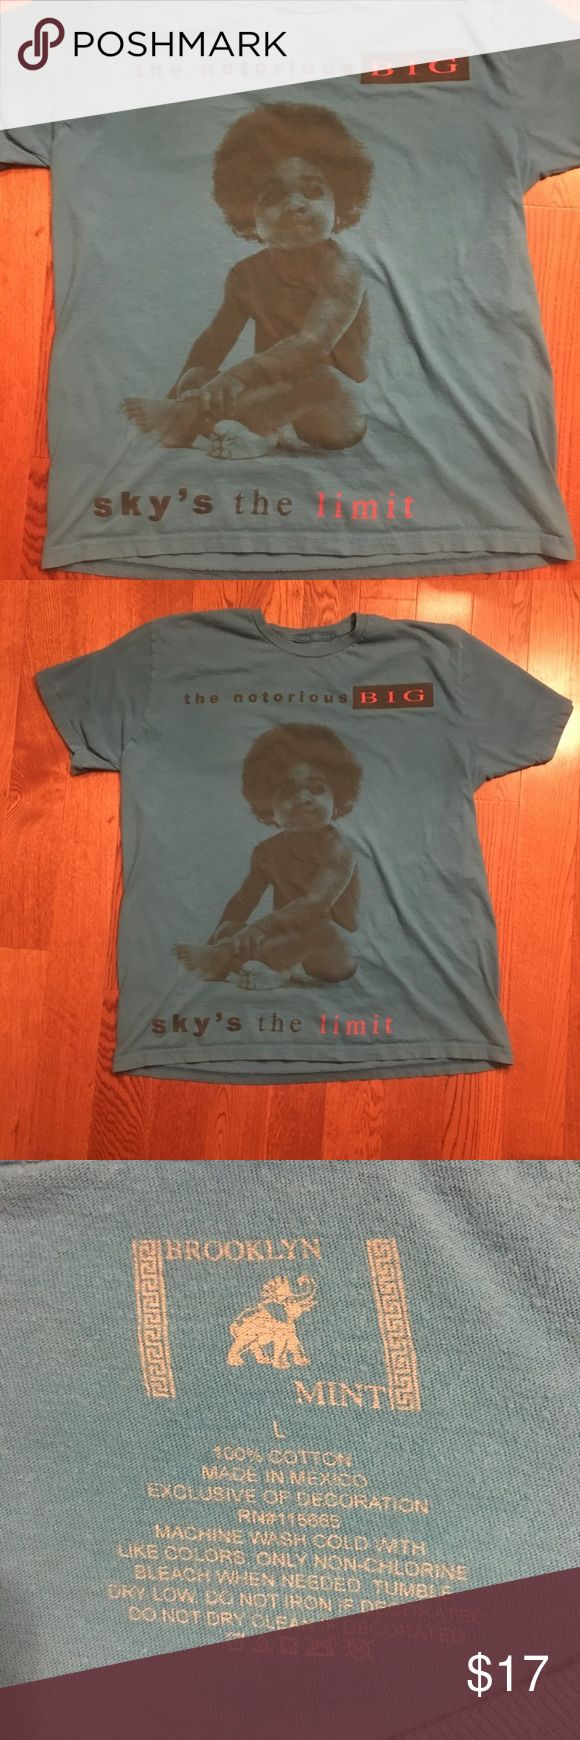 Notorious BIG tee shirt 🔥🔥awesome Biggie smalls/Notorious B.I.G. album tee. Sky's The Limit album cover  Tagged size: L, fits to size Condition: great used condition, 9/10   #depop #depopusa #depopfamous #starter #Columbia #vintagecolumbia #nike #vintagenike #vintage #kappa #vintagekappa #tommyhilfiger #vintagetommyhilfiger #ralphlauren #champion #patagonia #northface #supreme #gucci #nautica #vintagenautica Shirts Tees - Short Sleeve